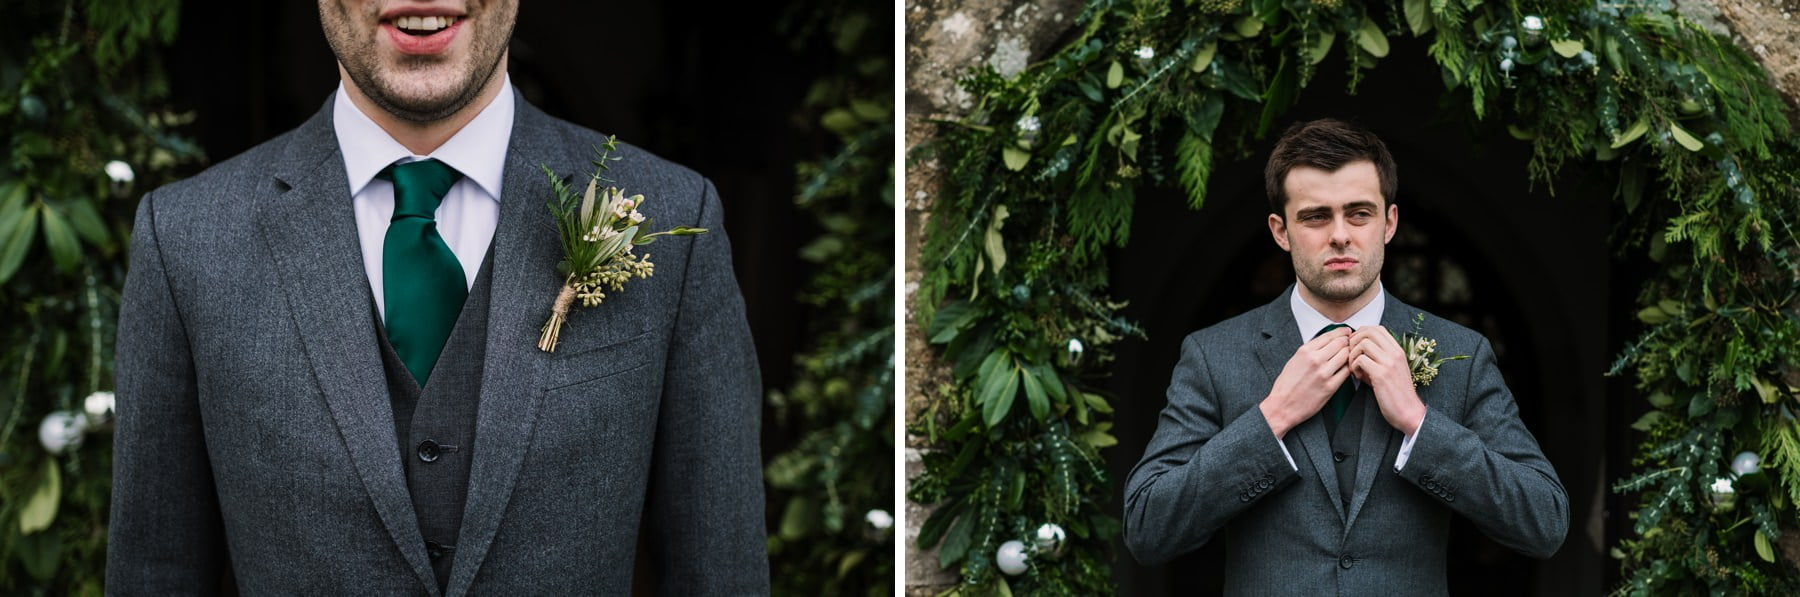 Groom at Winter Wedding in New Forest